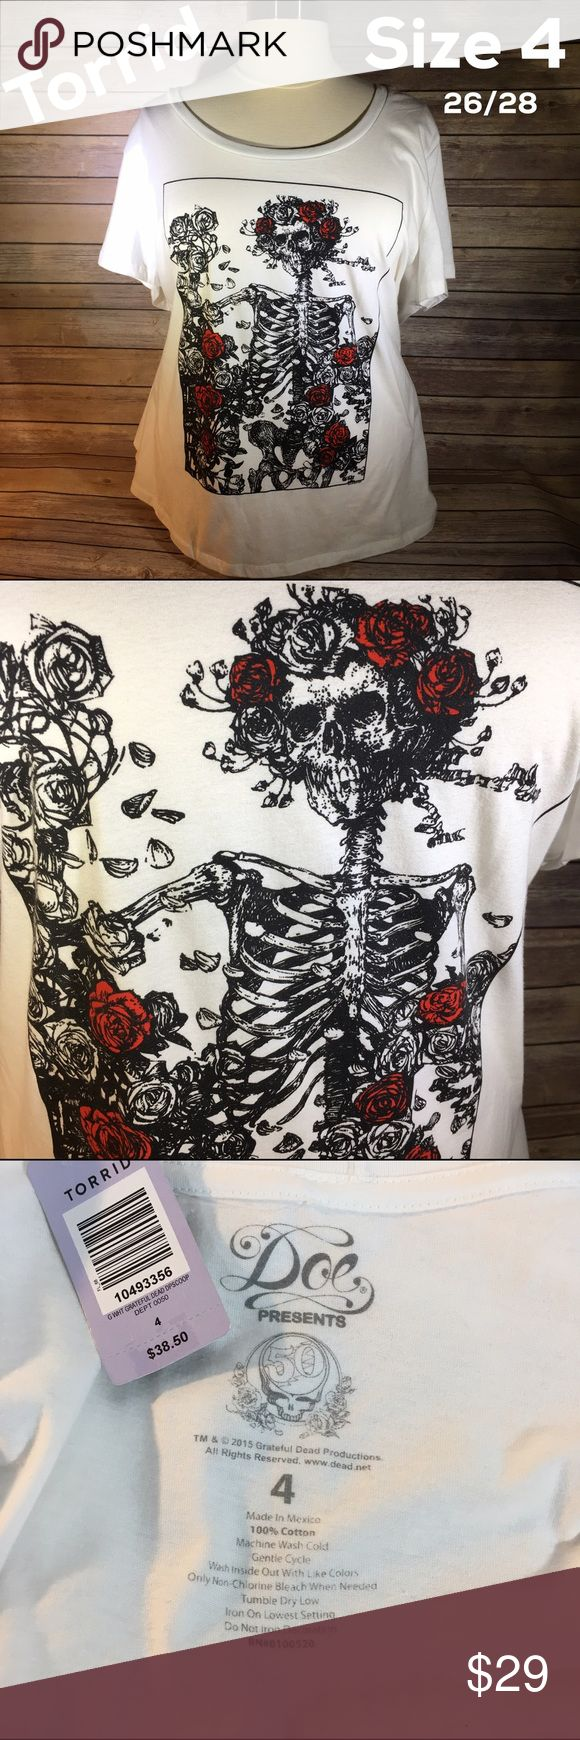 Torrid Grateful Dead Tee Shirt T-shirt 26/28 sz 4 Torrid Grateful Dead T-Shirt •Size: Torrid 4 = 26/28 •Color: White w/black & red •Brand New w/ Tag Attached •SOLD OUT at Torrid  Please review all photos to know exactlty what you are purchasing.  If I forgot anything, just tag me and ask! 💋  No 🅿️🅿️ No Ⓜ️ 🚫 Trades torrid Tops Tees - Short Sleeve